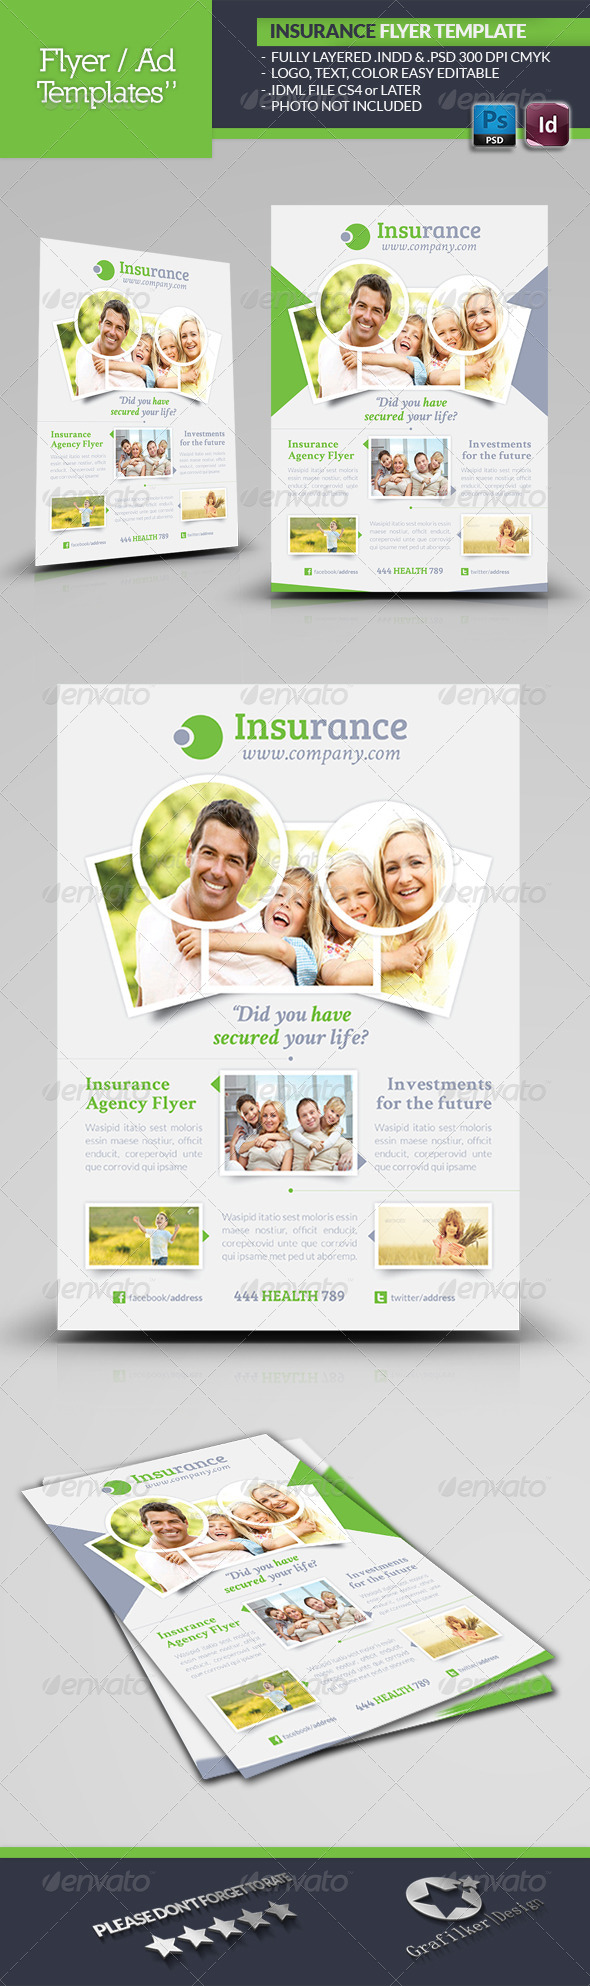 Insurance Agency Flyer Template - Corporate Flyers